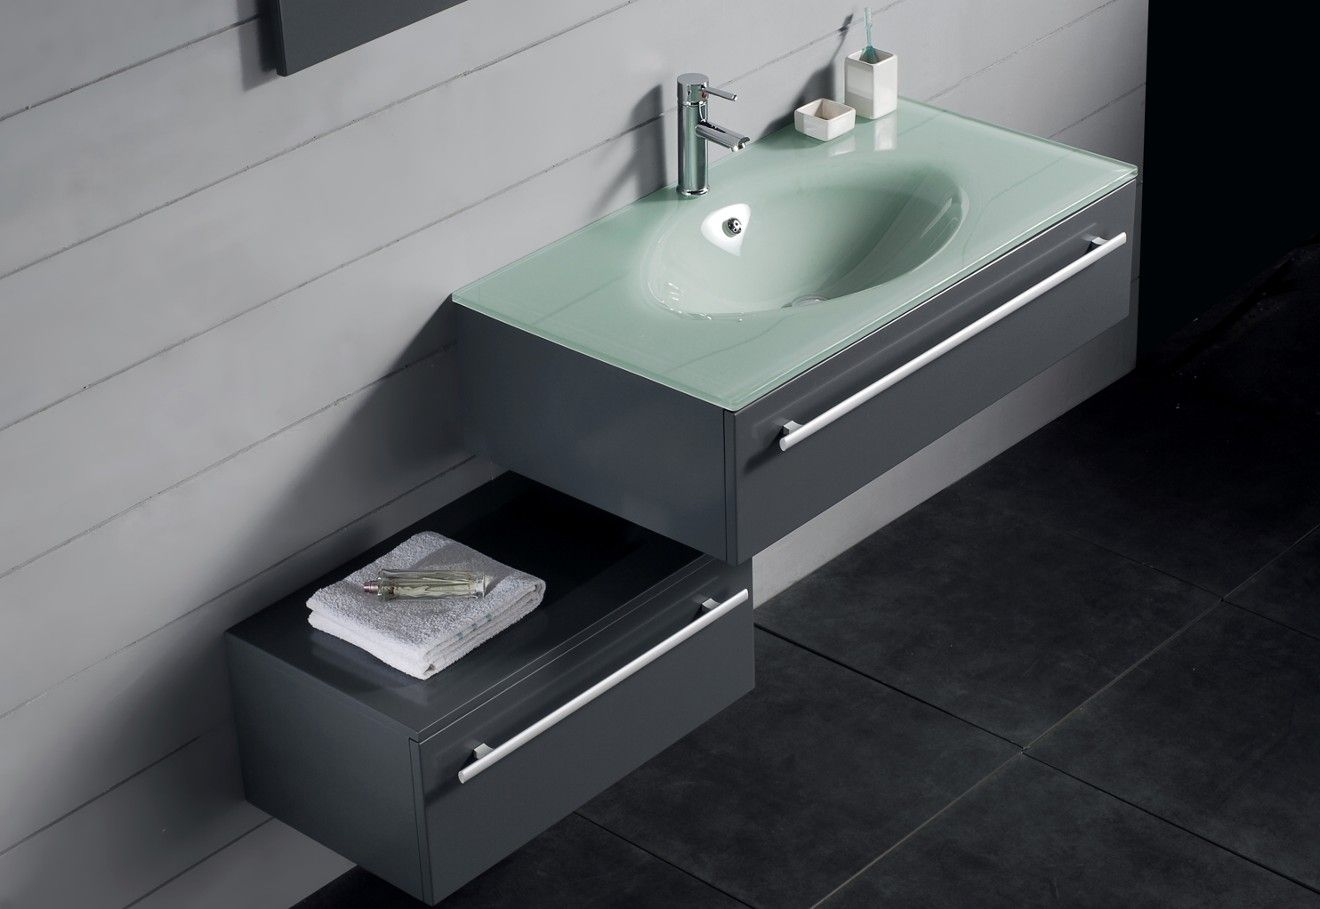 Modern Bathroom Vanity Set  Triton  Moh  Sinks  Pinterest Unique Designer Bathroom Sink Inspiration Design